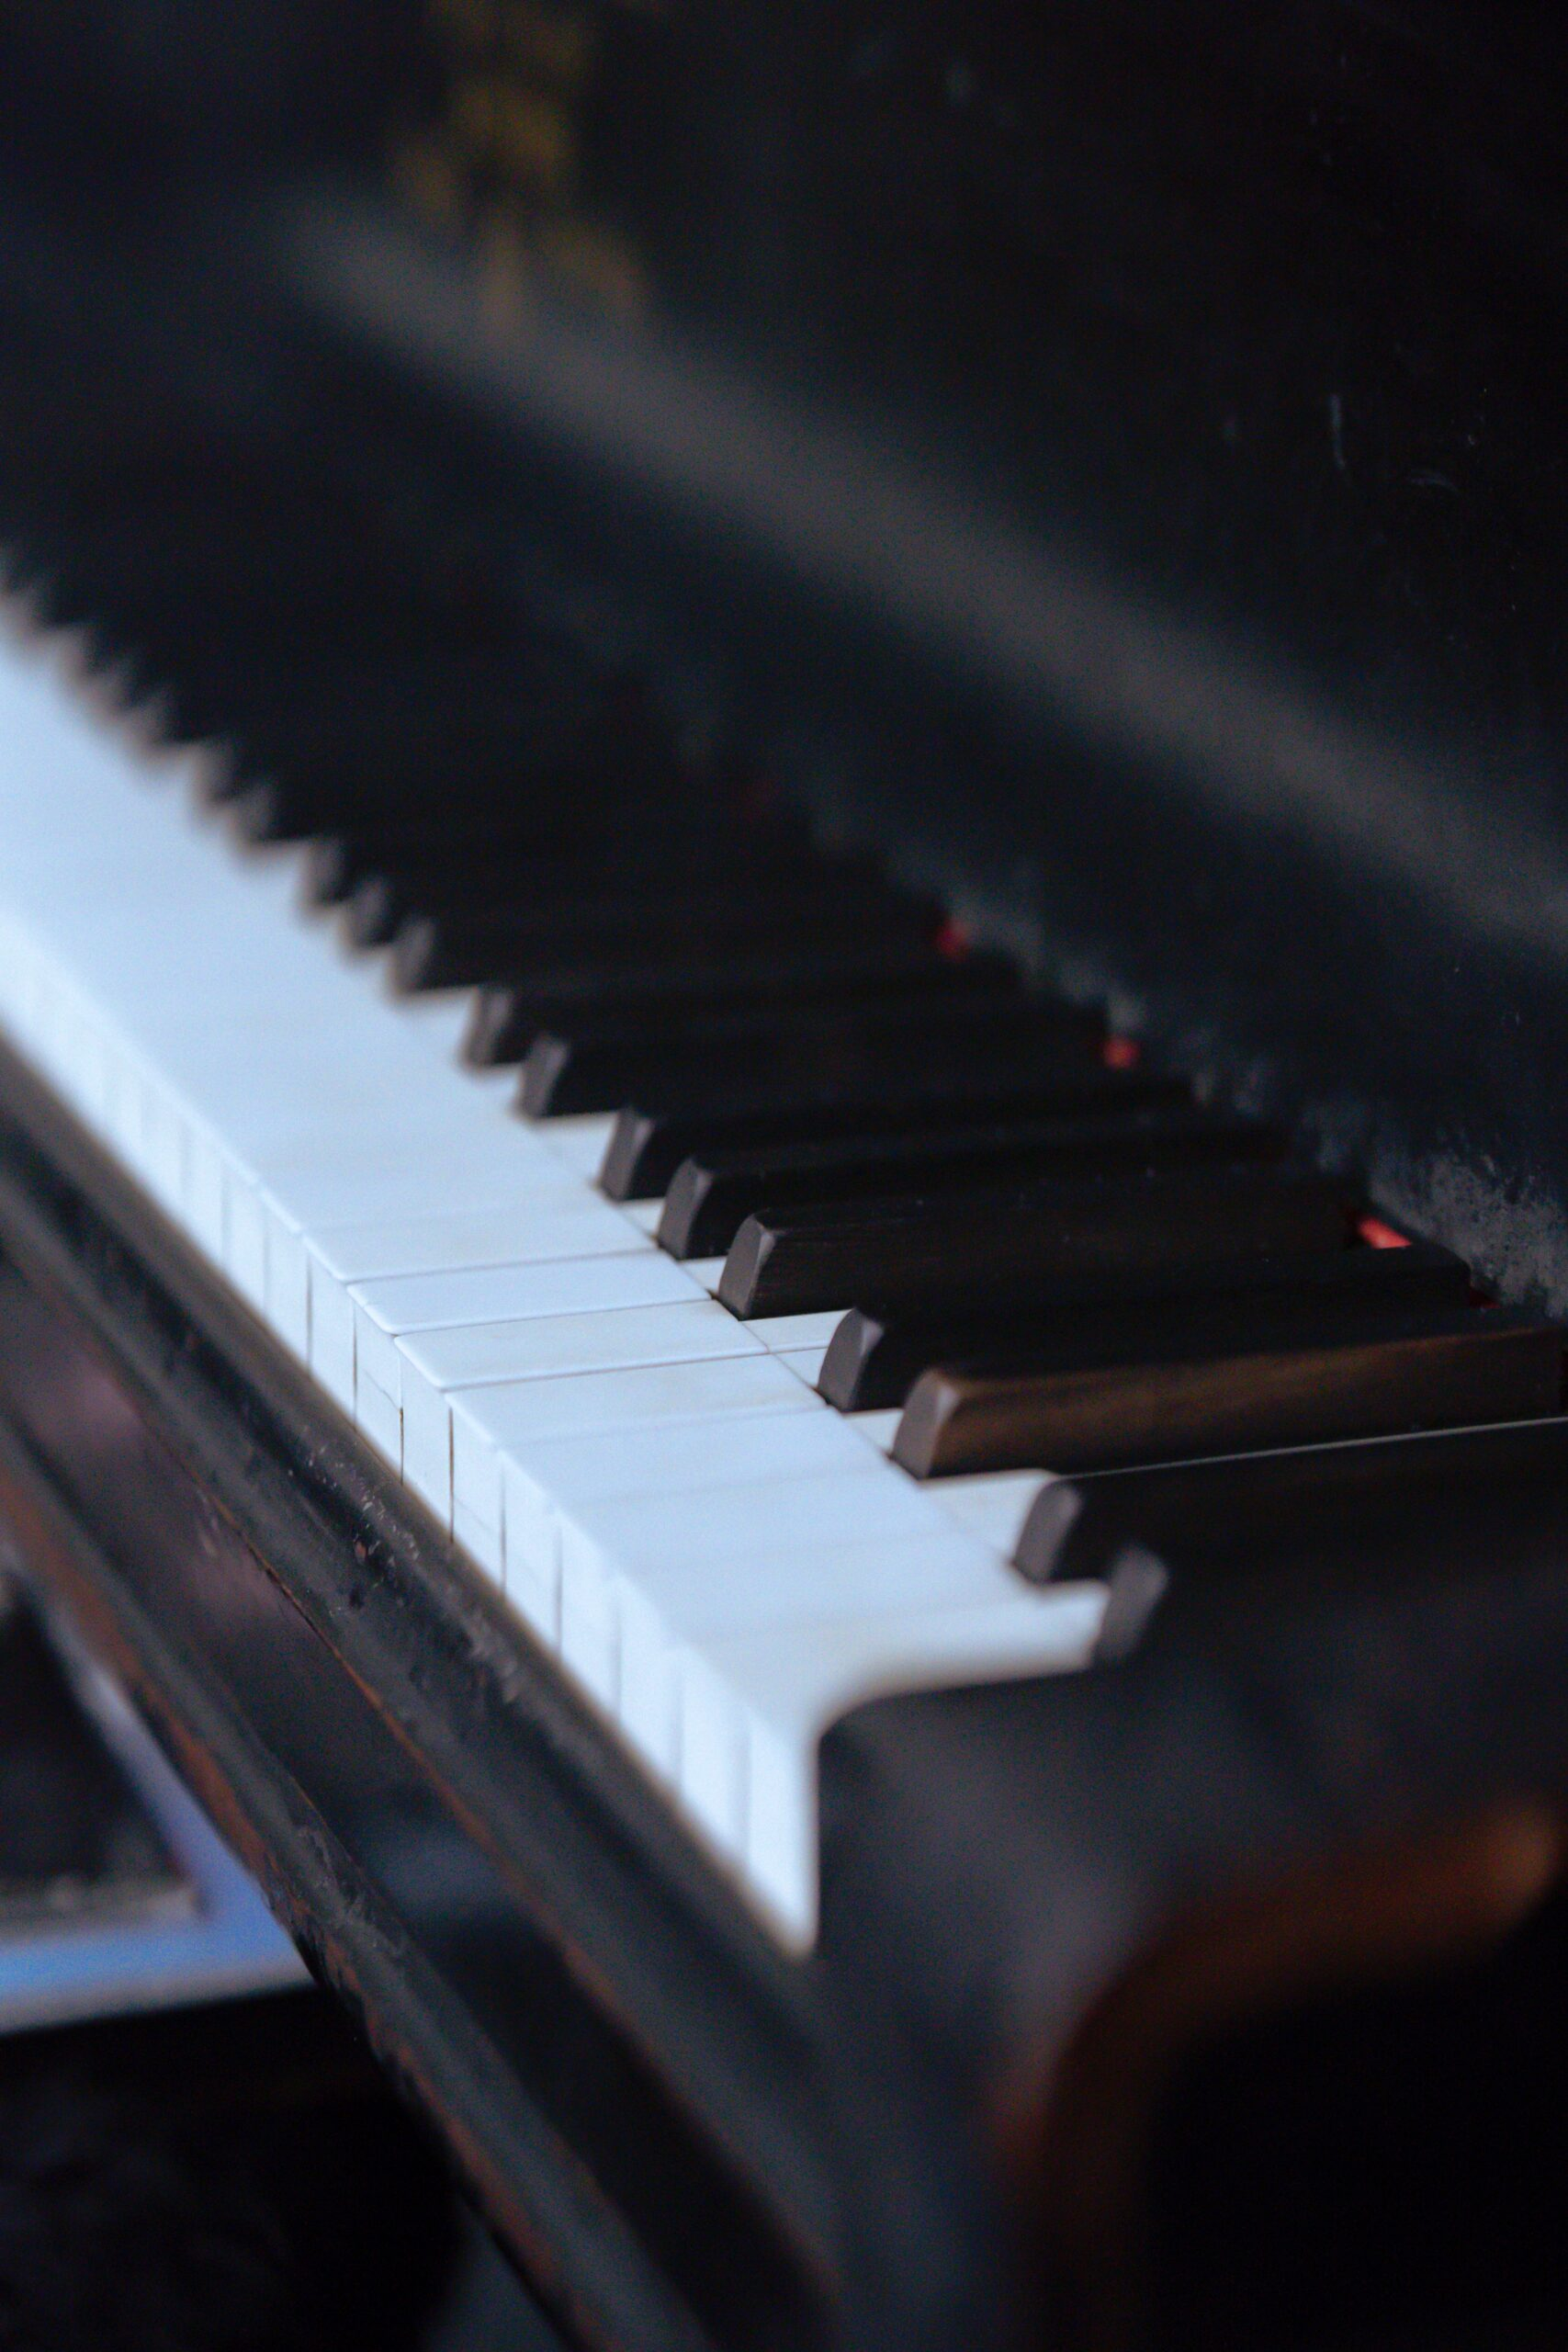 Black wooden piano for playing classical music